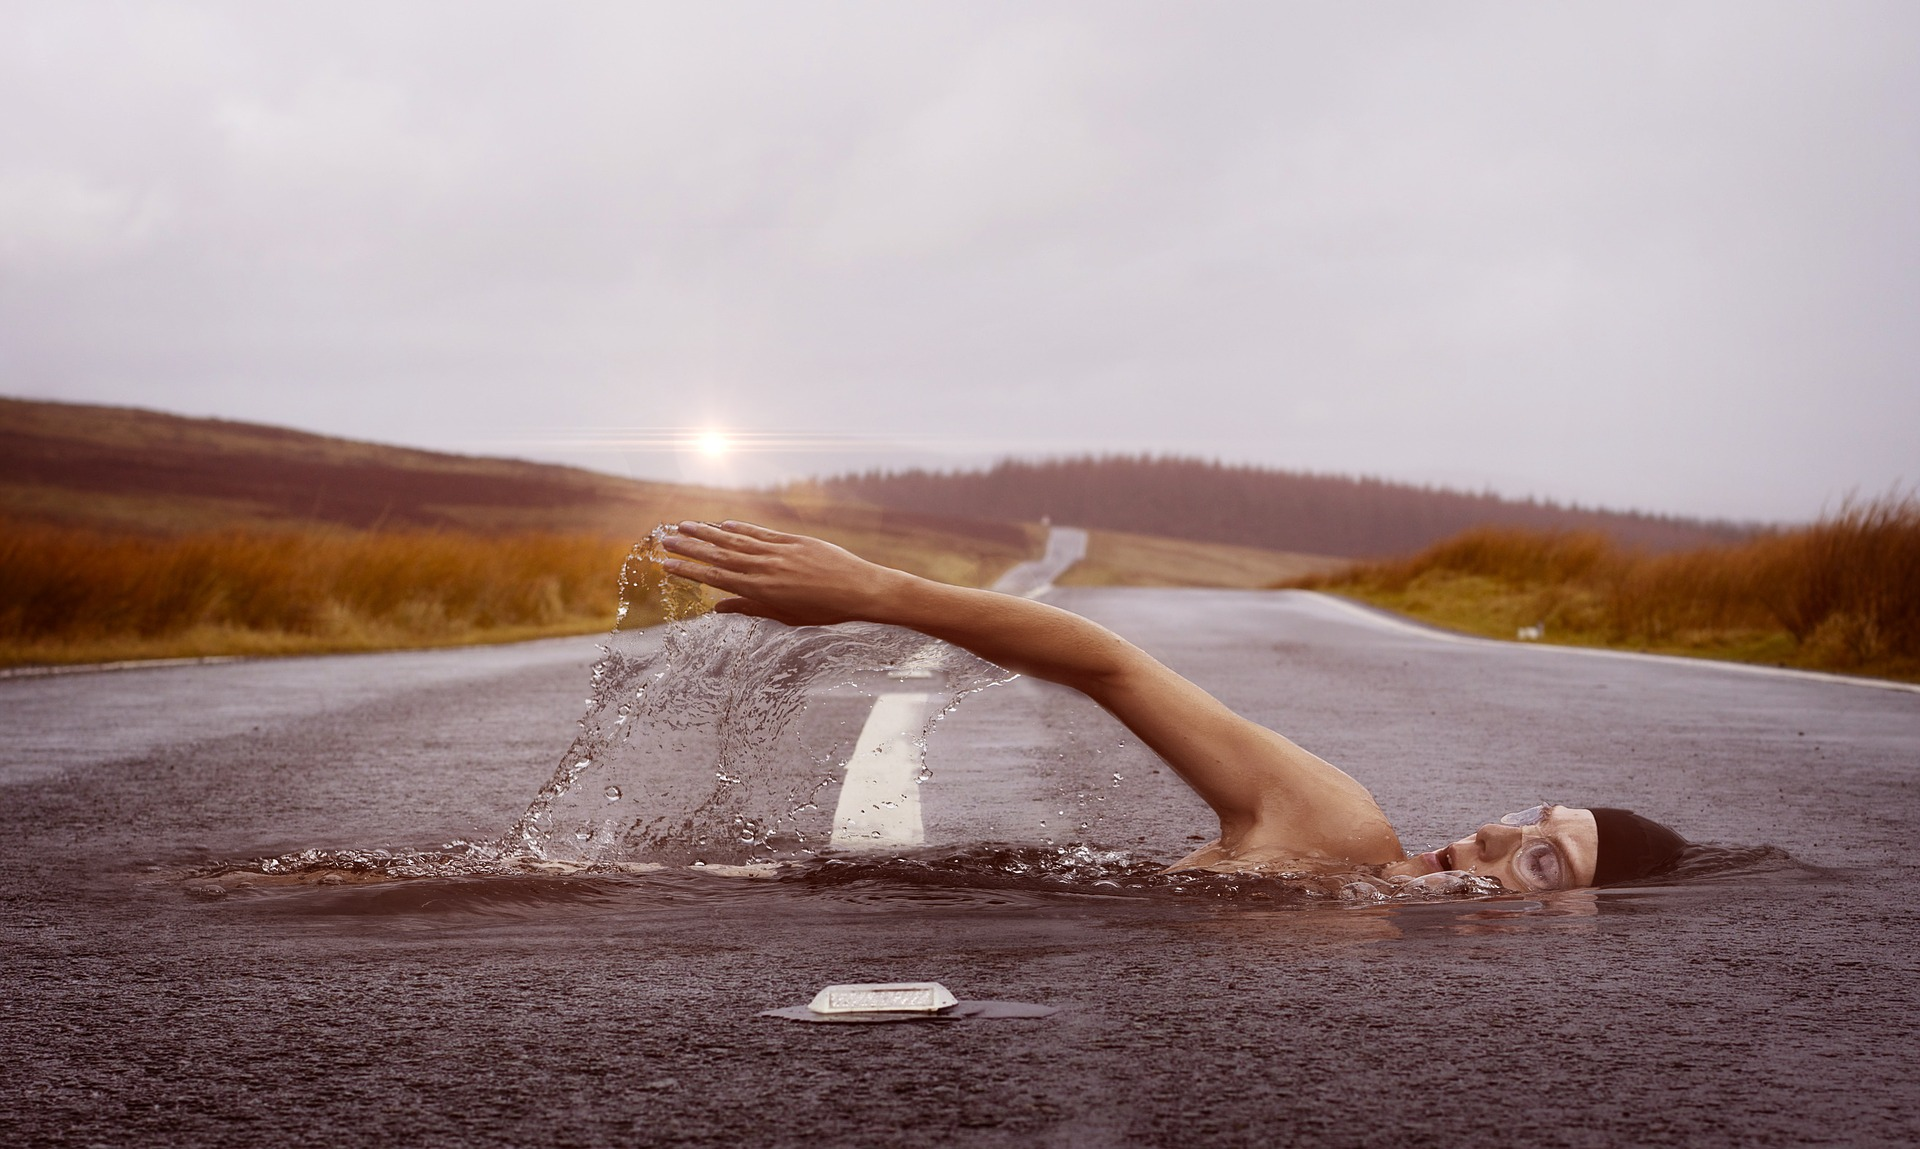 male swimming on pool middle of street running or swimming which is better for you